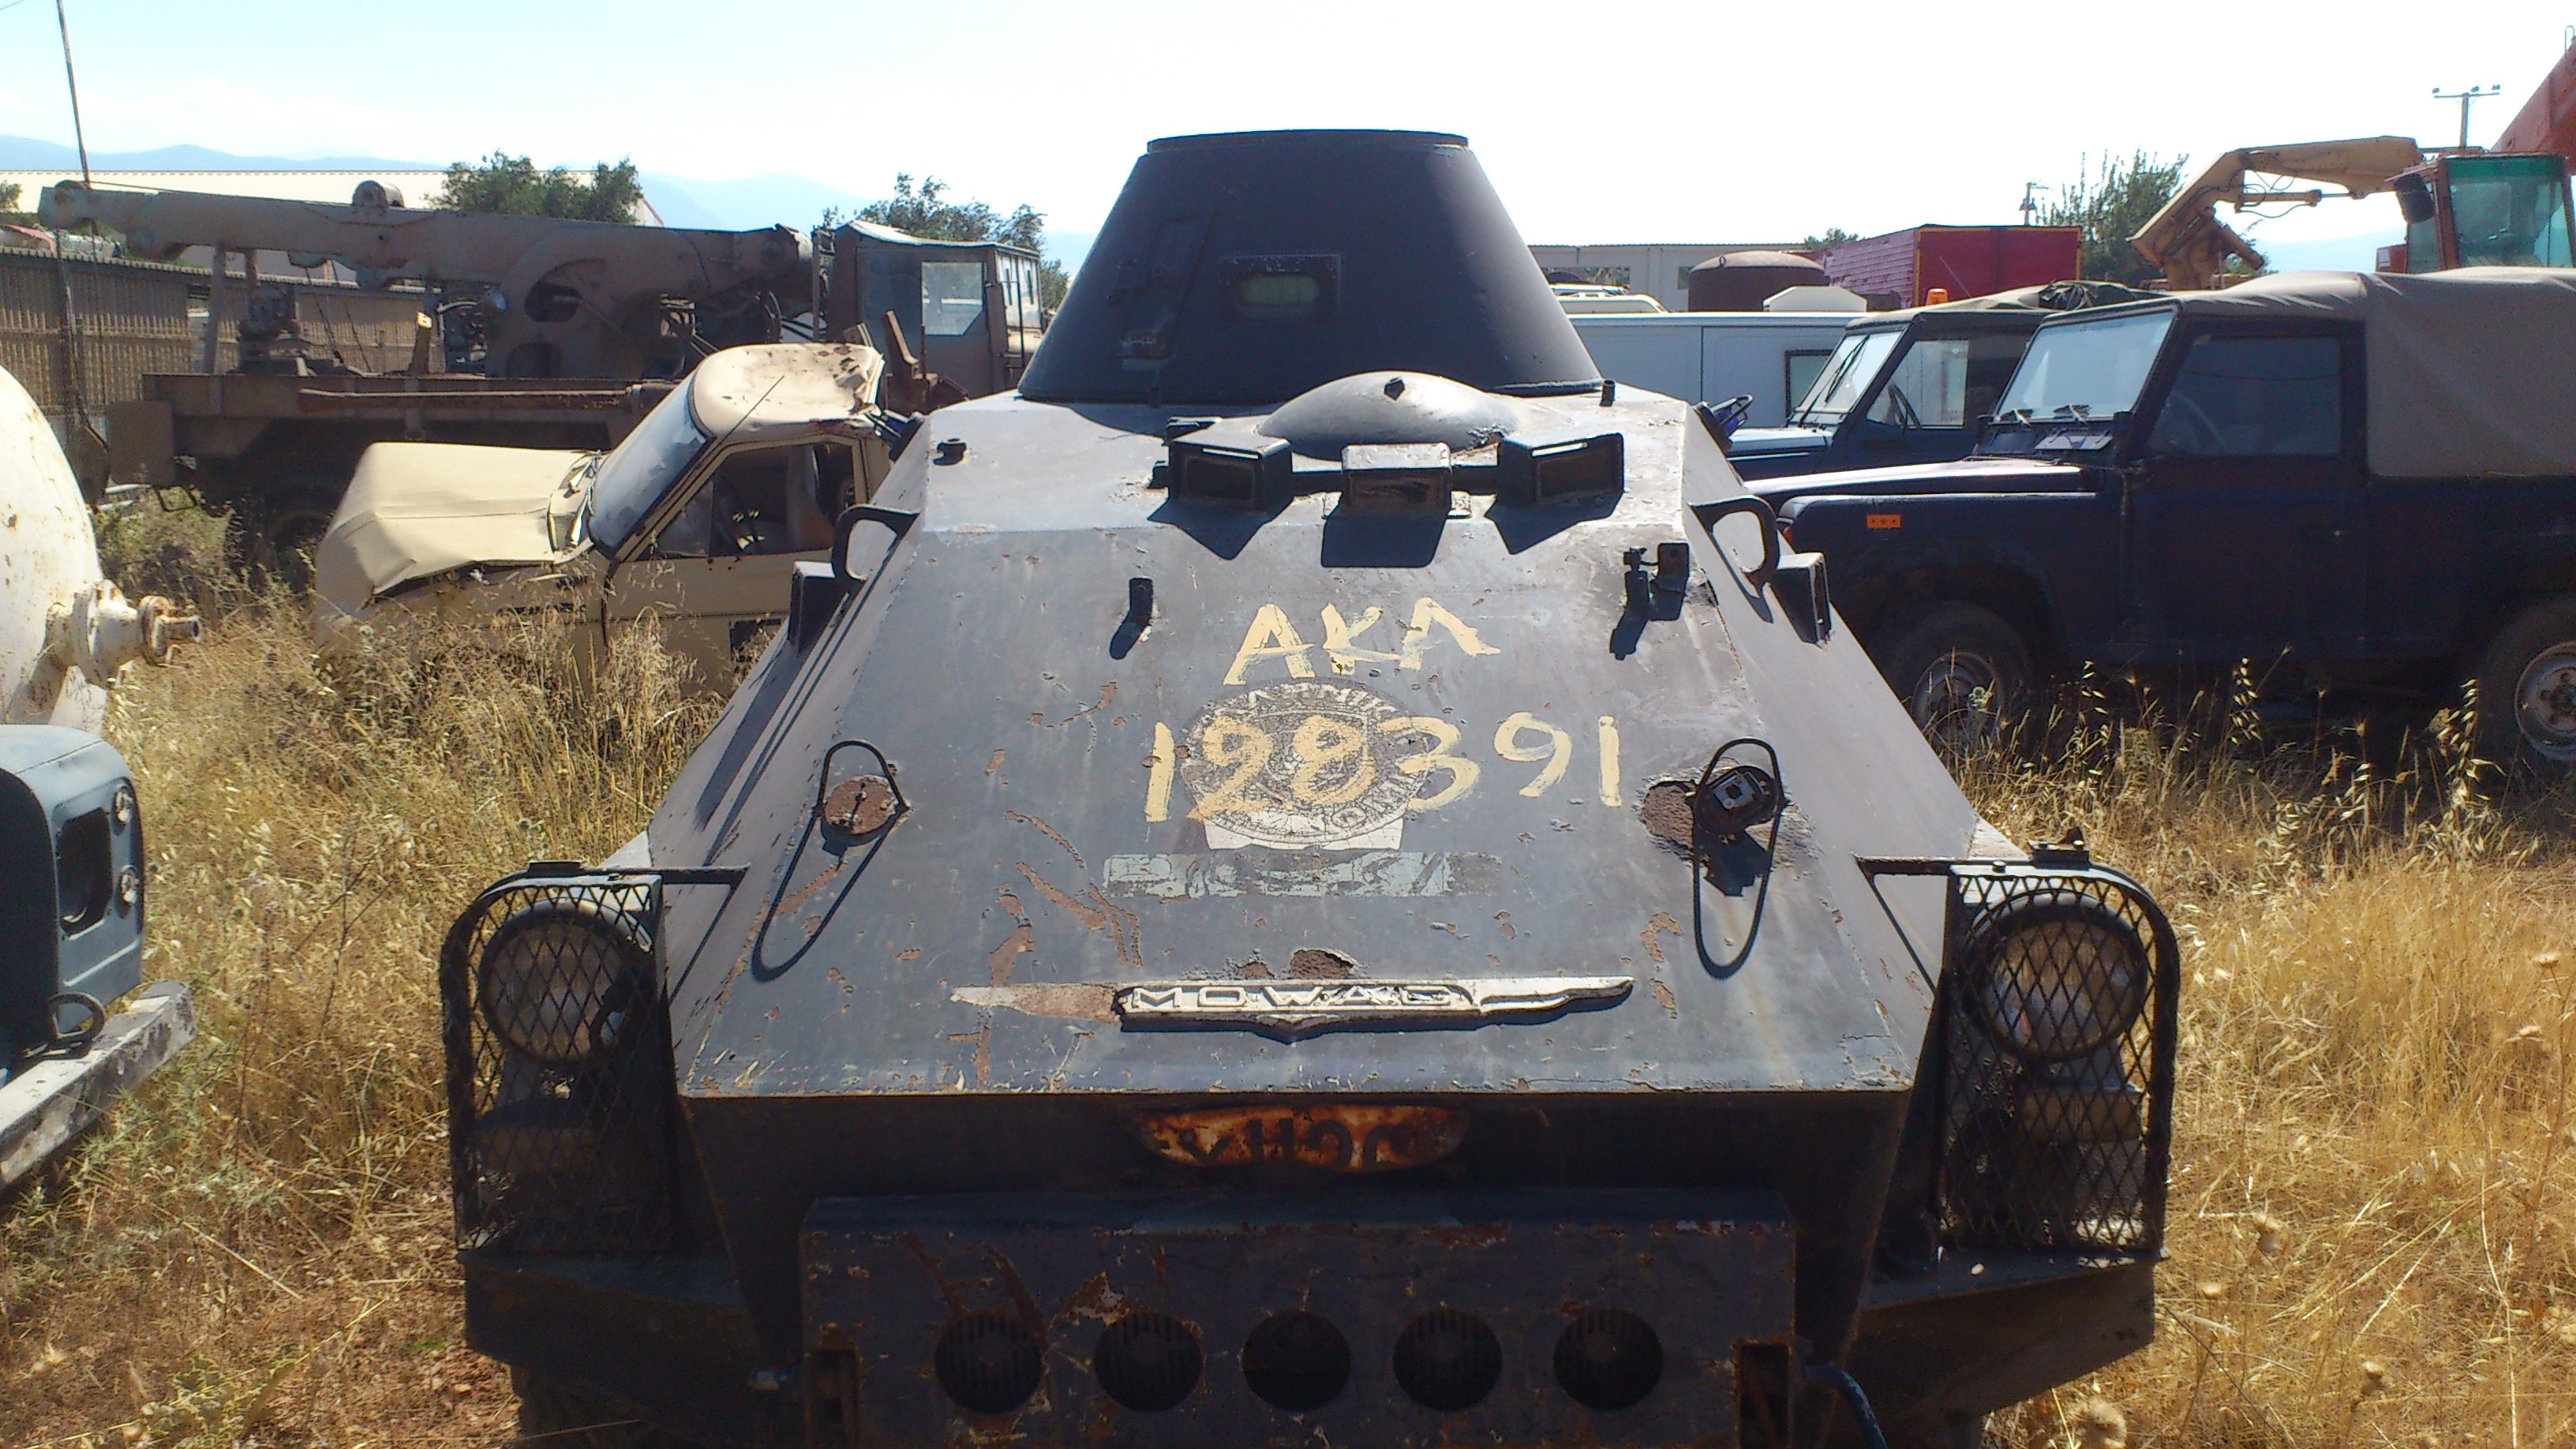 Mowag roland photo - 1